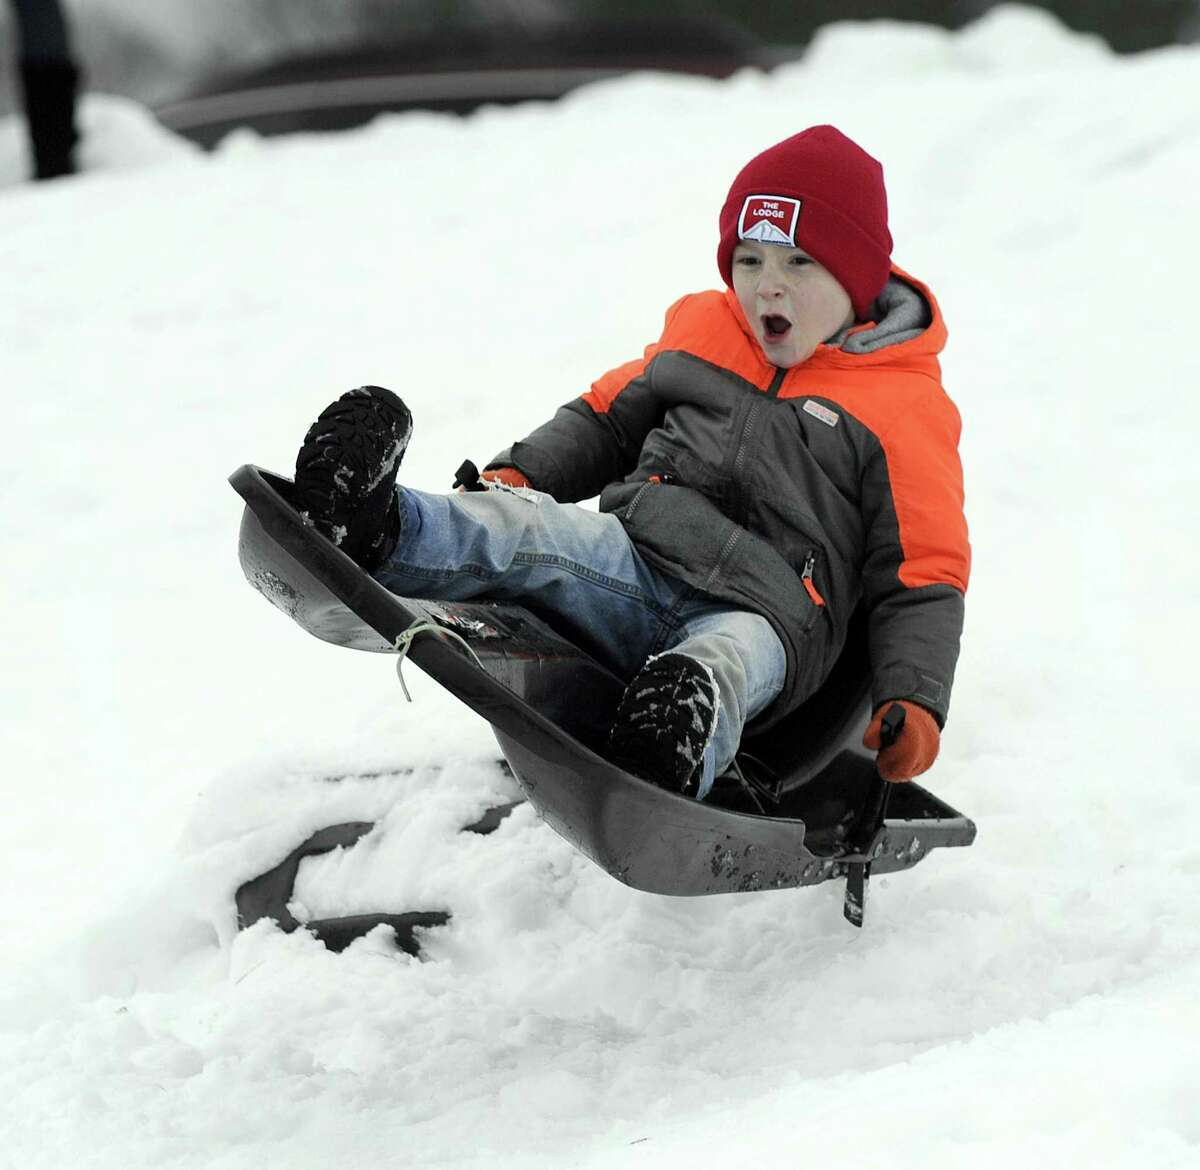 Russell Cencro, 6, of New Fairfield, sled rides down the hill at St. Gregory the Great Church in Danbury Thursday, March 8, 2018.